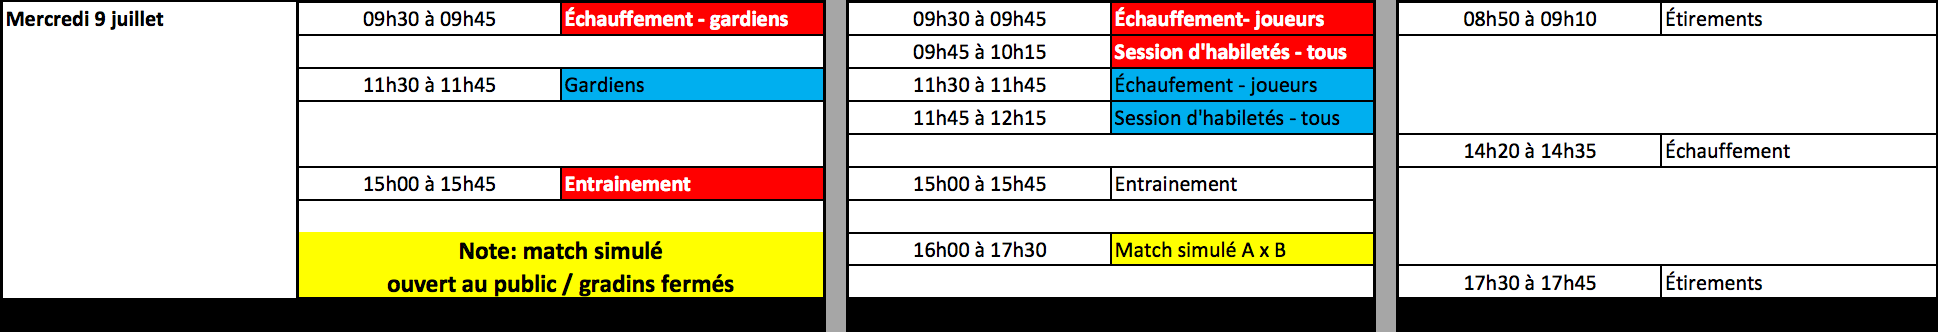 Wedensday_schedule